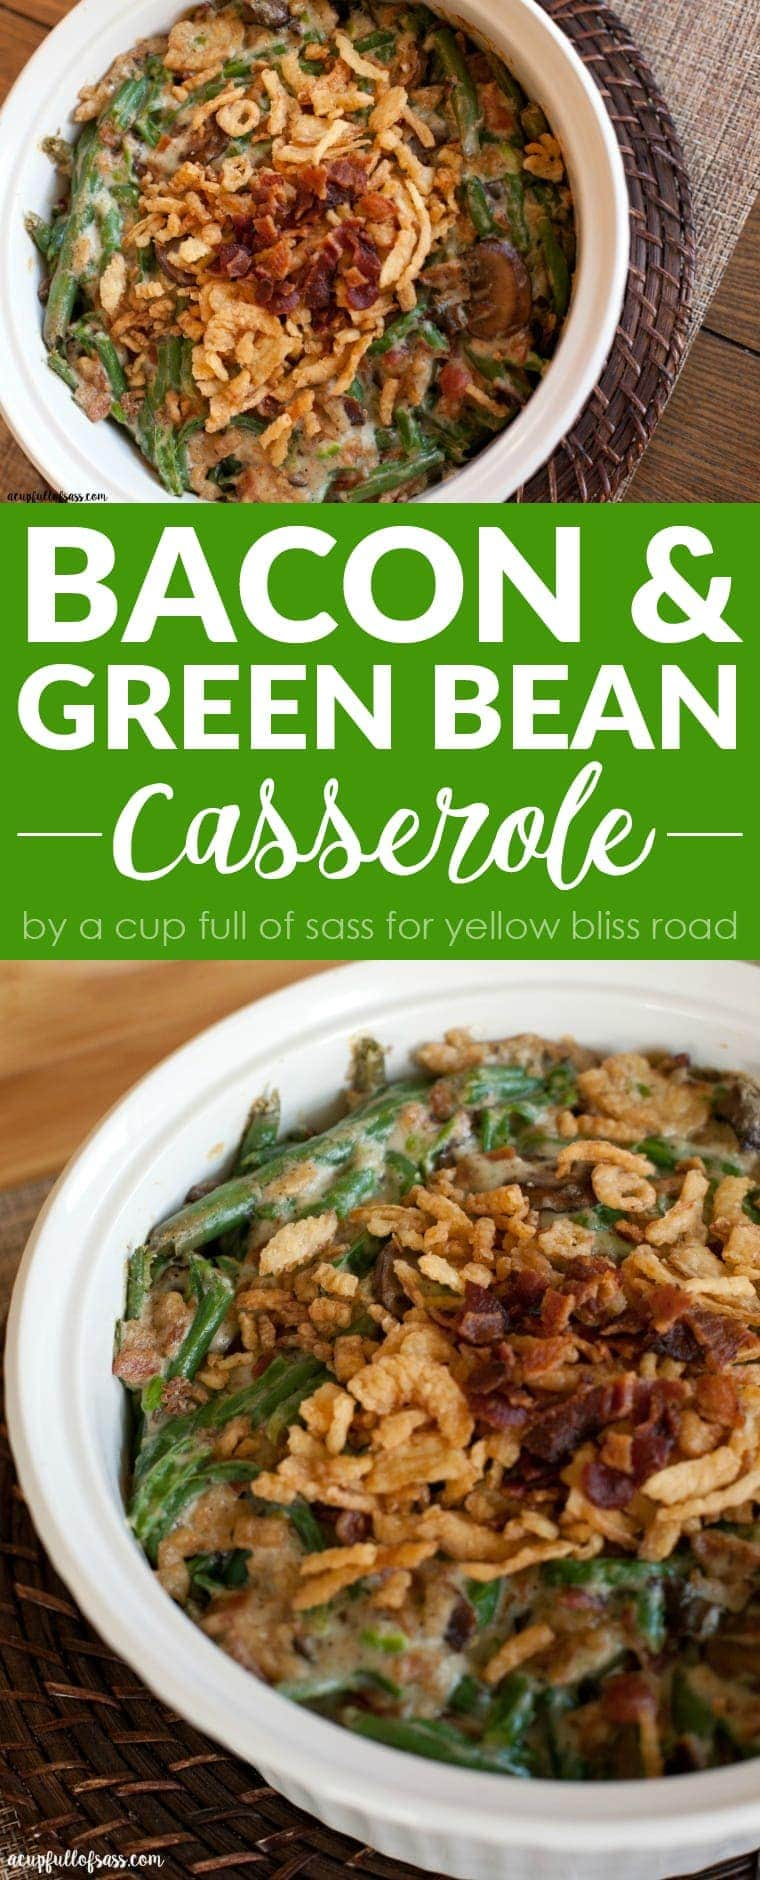 Bacon & Green Bean Casserole - take that old stand by holiday family favorite up a notch! Perfect for Thanksgiving side dish or Christmas side dish!